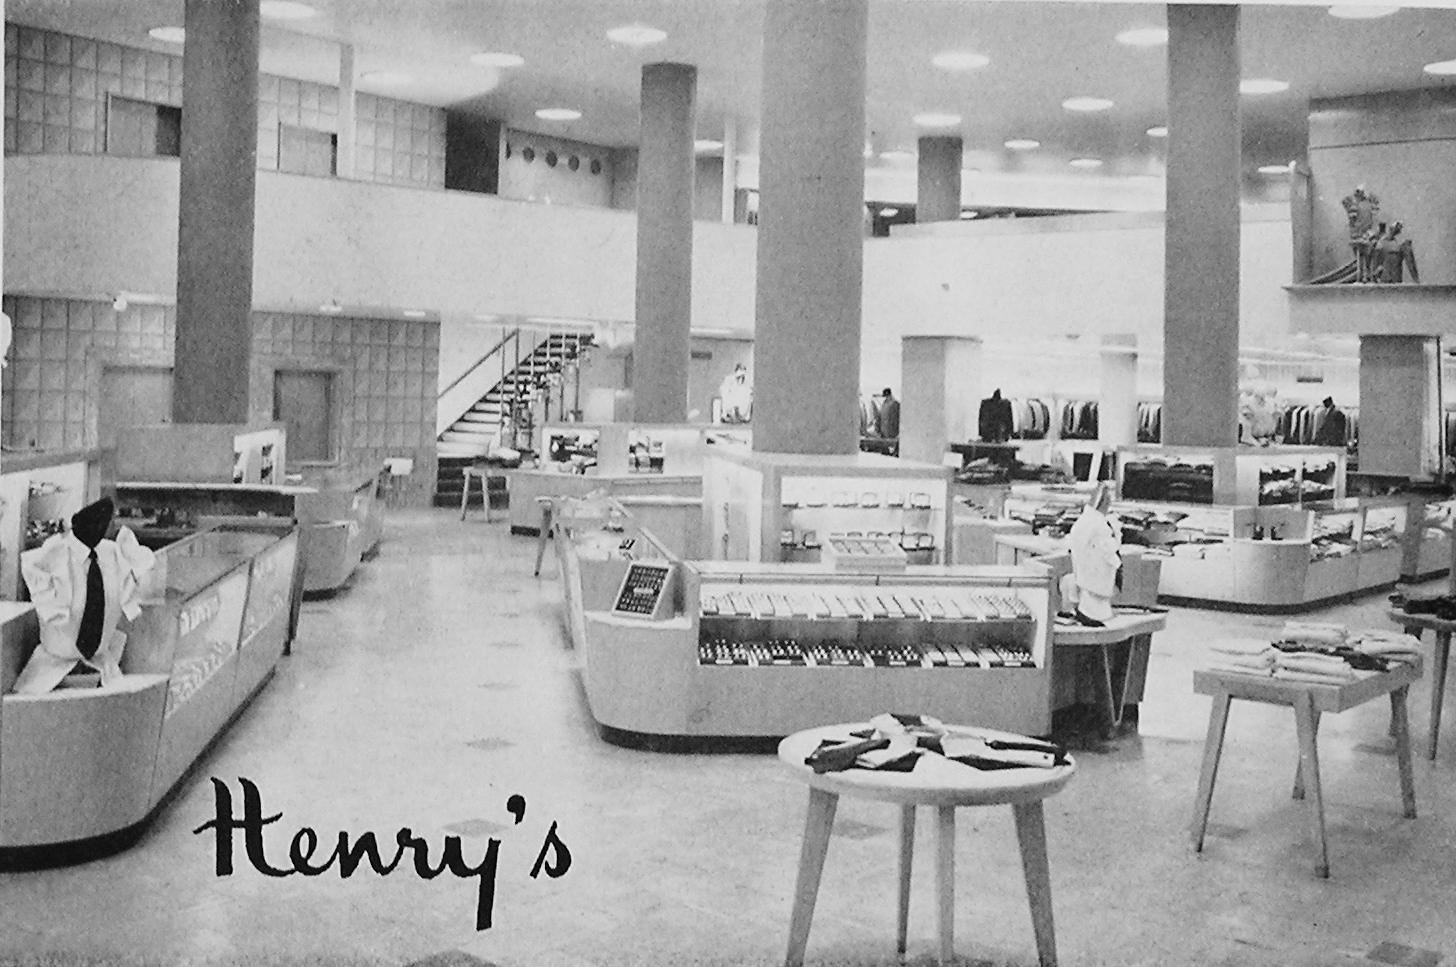 Wdm S Architectural Archaeology Henry S Department Store